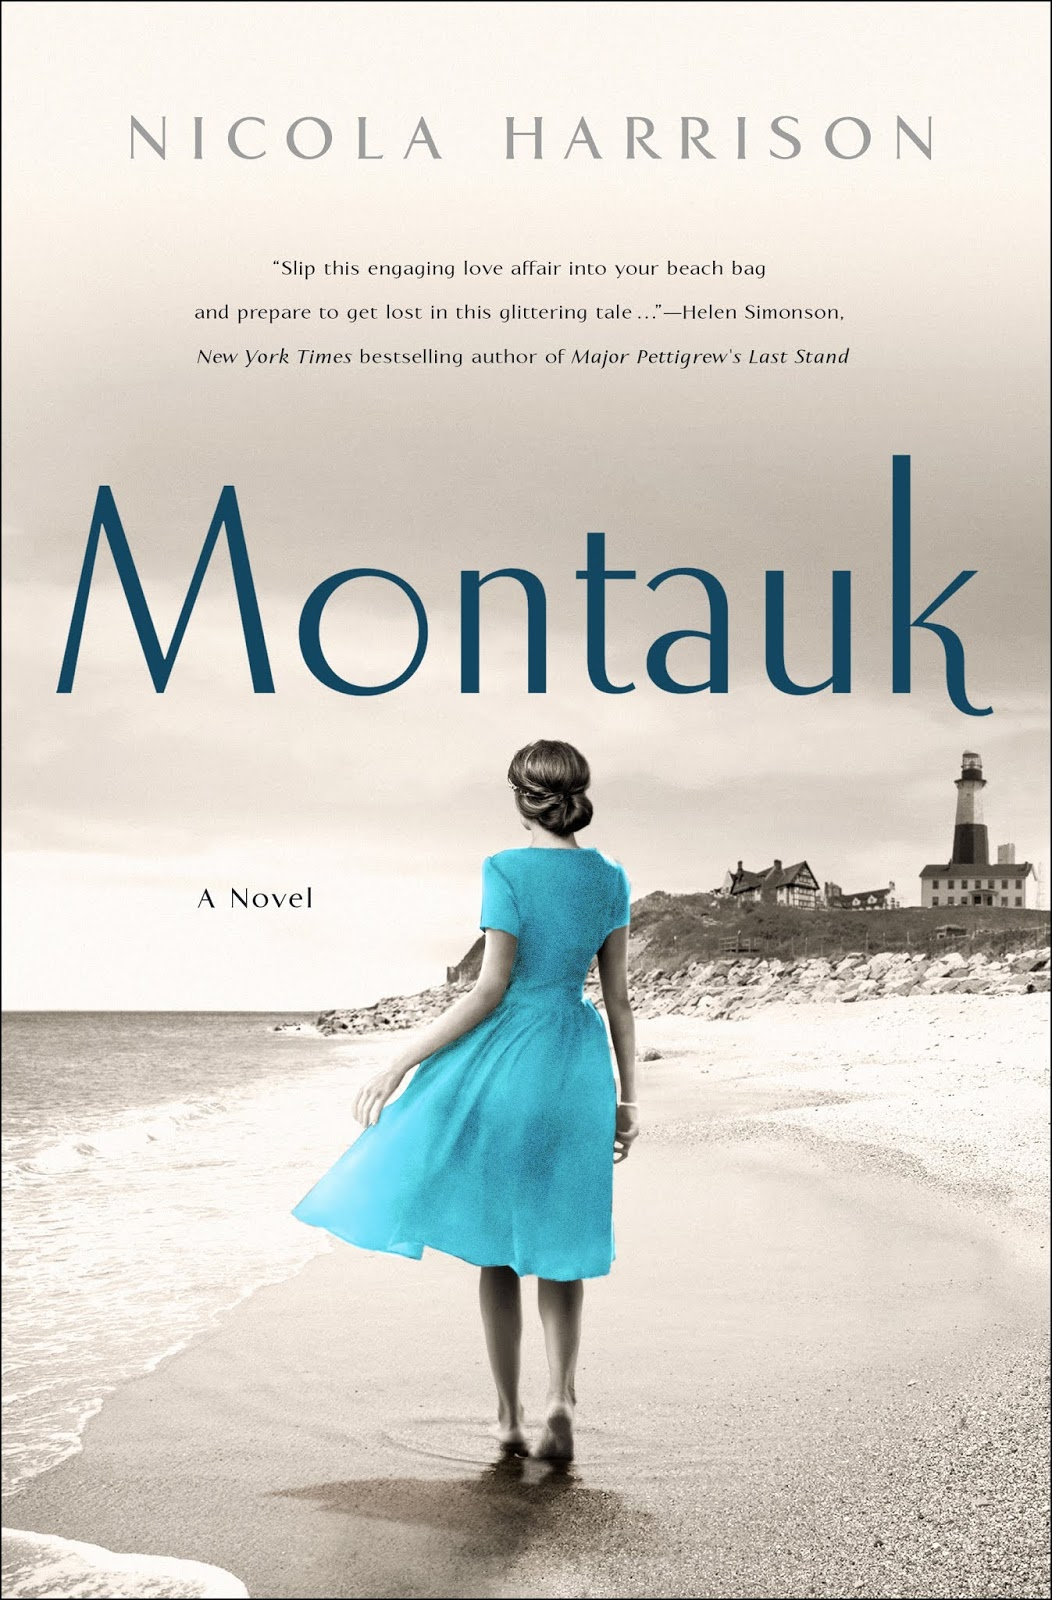 Confessions of a Book Addict: Blog Tour and Giveaway: Montauk